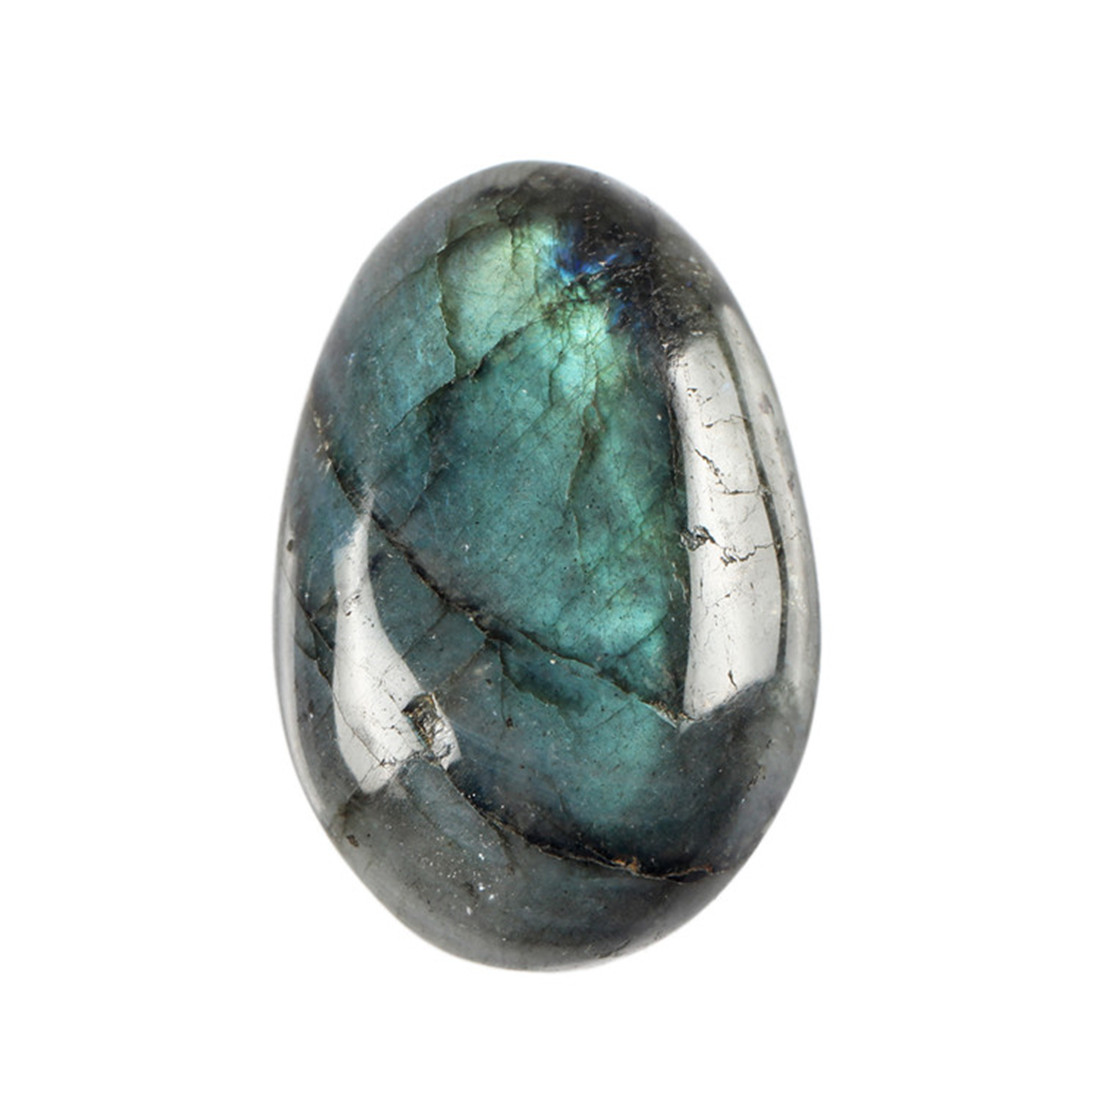 1pc Natural Labradorite Clear Crystal Blue Calcite Natural Gemstones Tumbled Stone Beads Reiki Point Chakra Healing Minerals